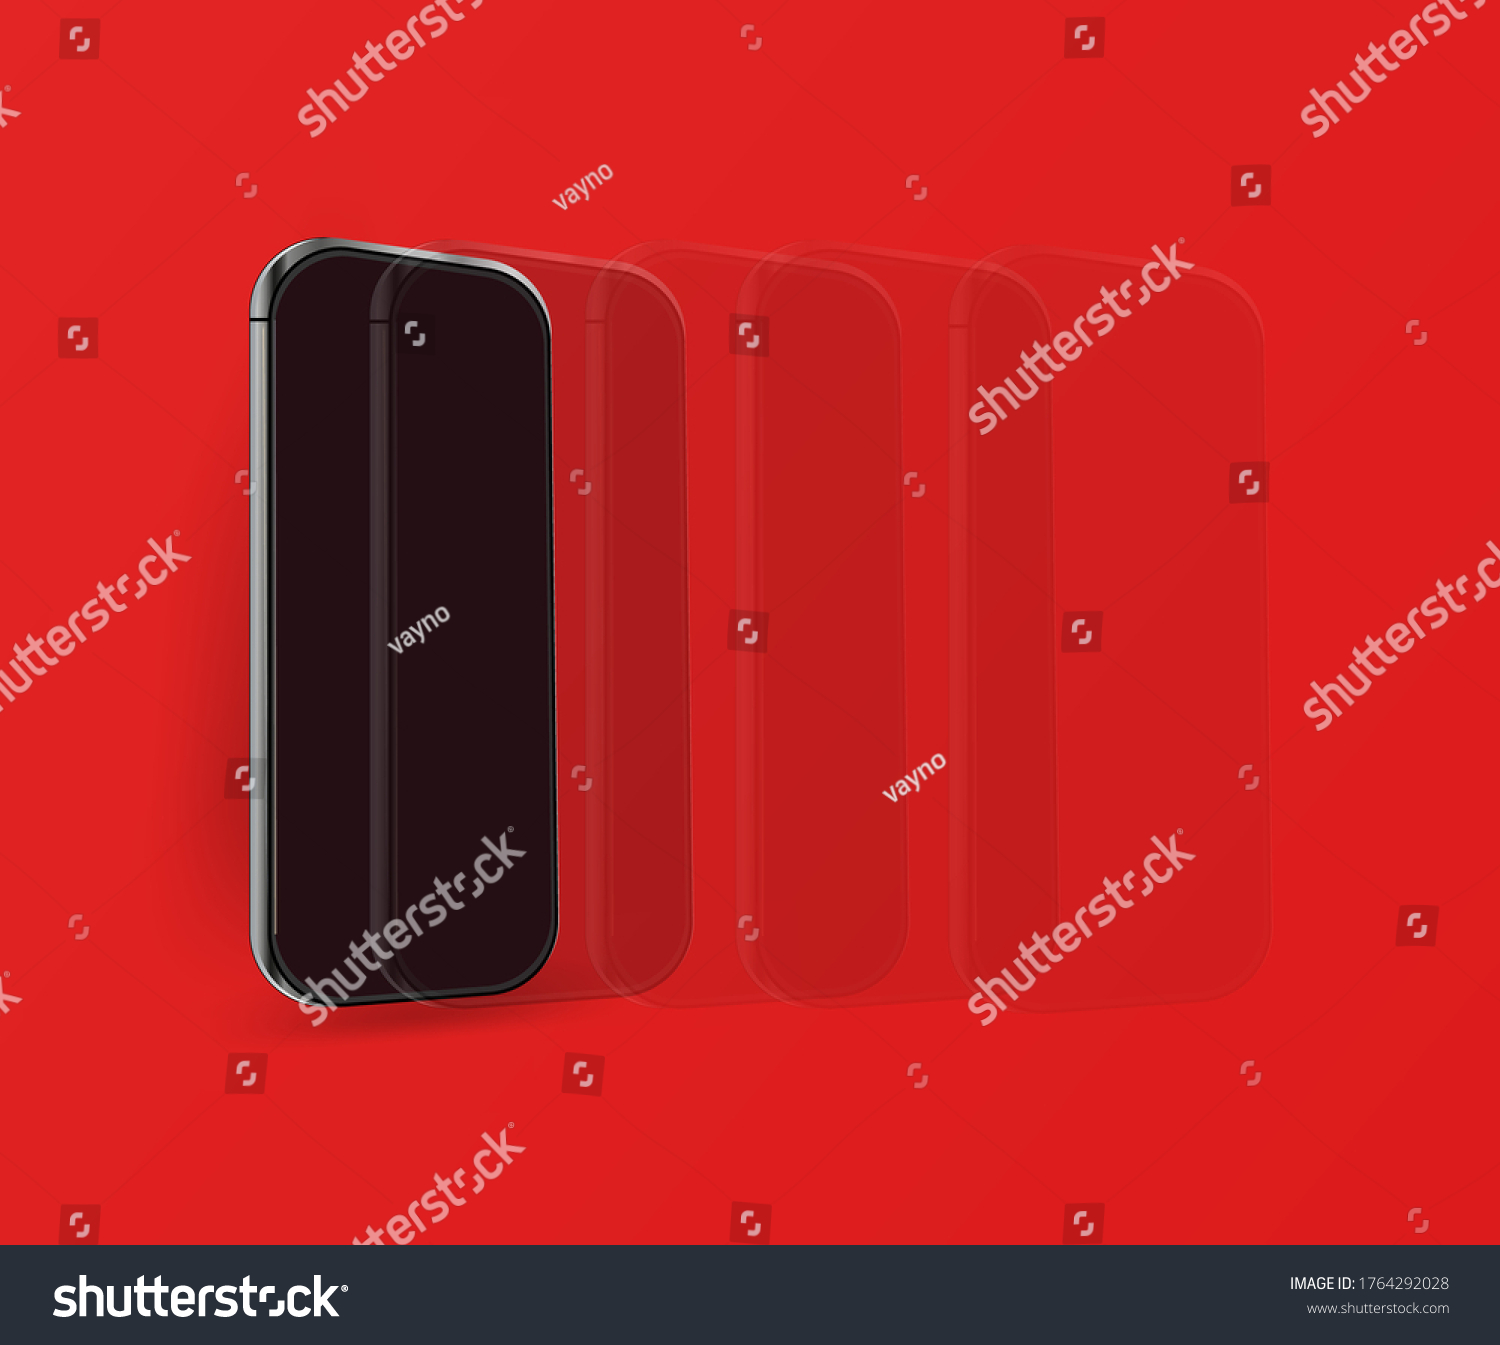 smart phone and mobile phone. isolated mobile phone vector against red background. Modern design